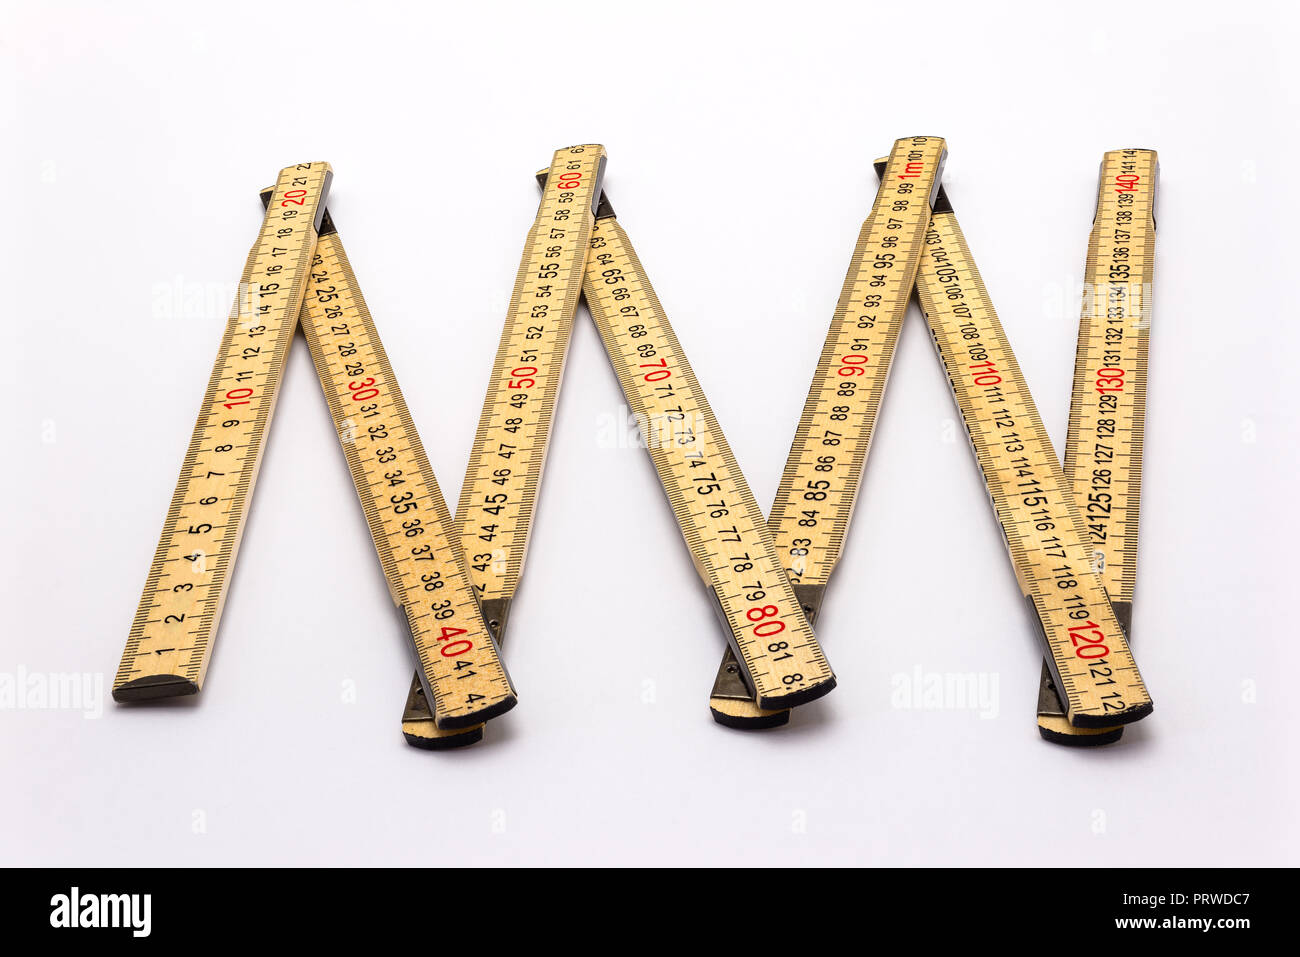 Wooden folding ruler isolated on a white background with a clipping path. - Stock Image